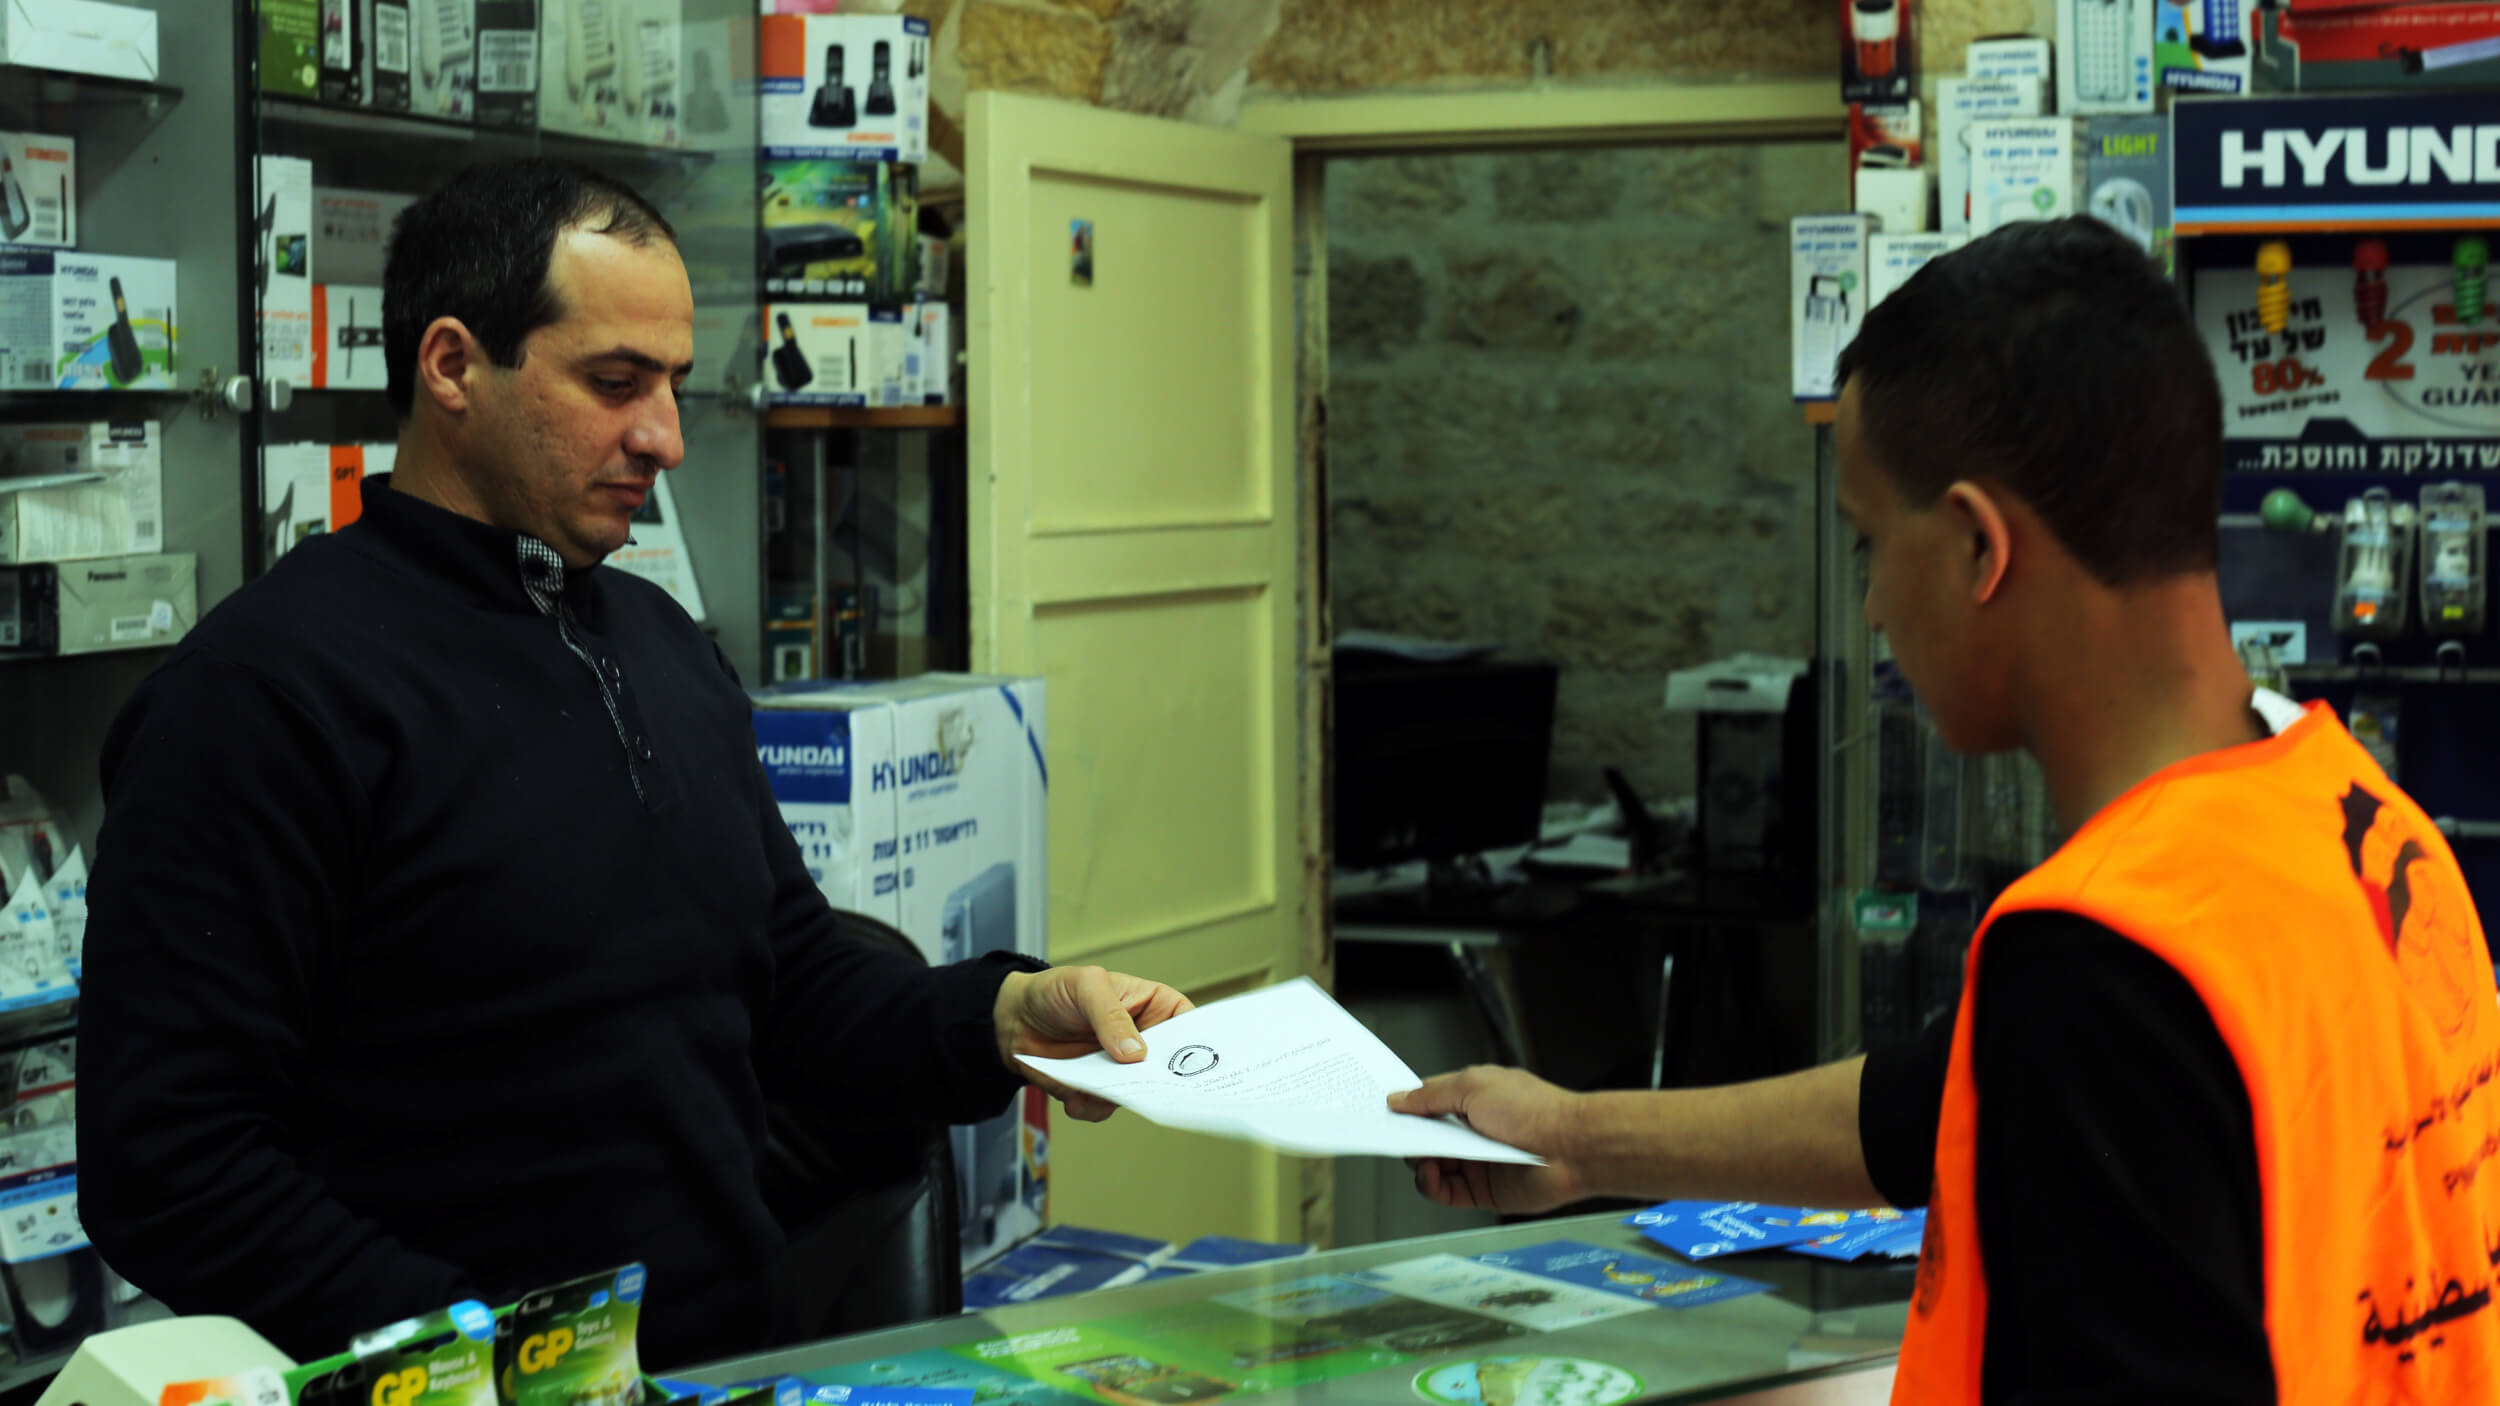 Marchers handed out flyers and took time to speak with business owners about the BDS movement (Photo: Abed al Qaisi)